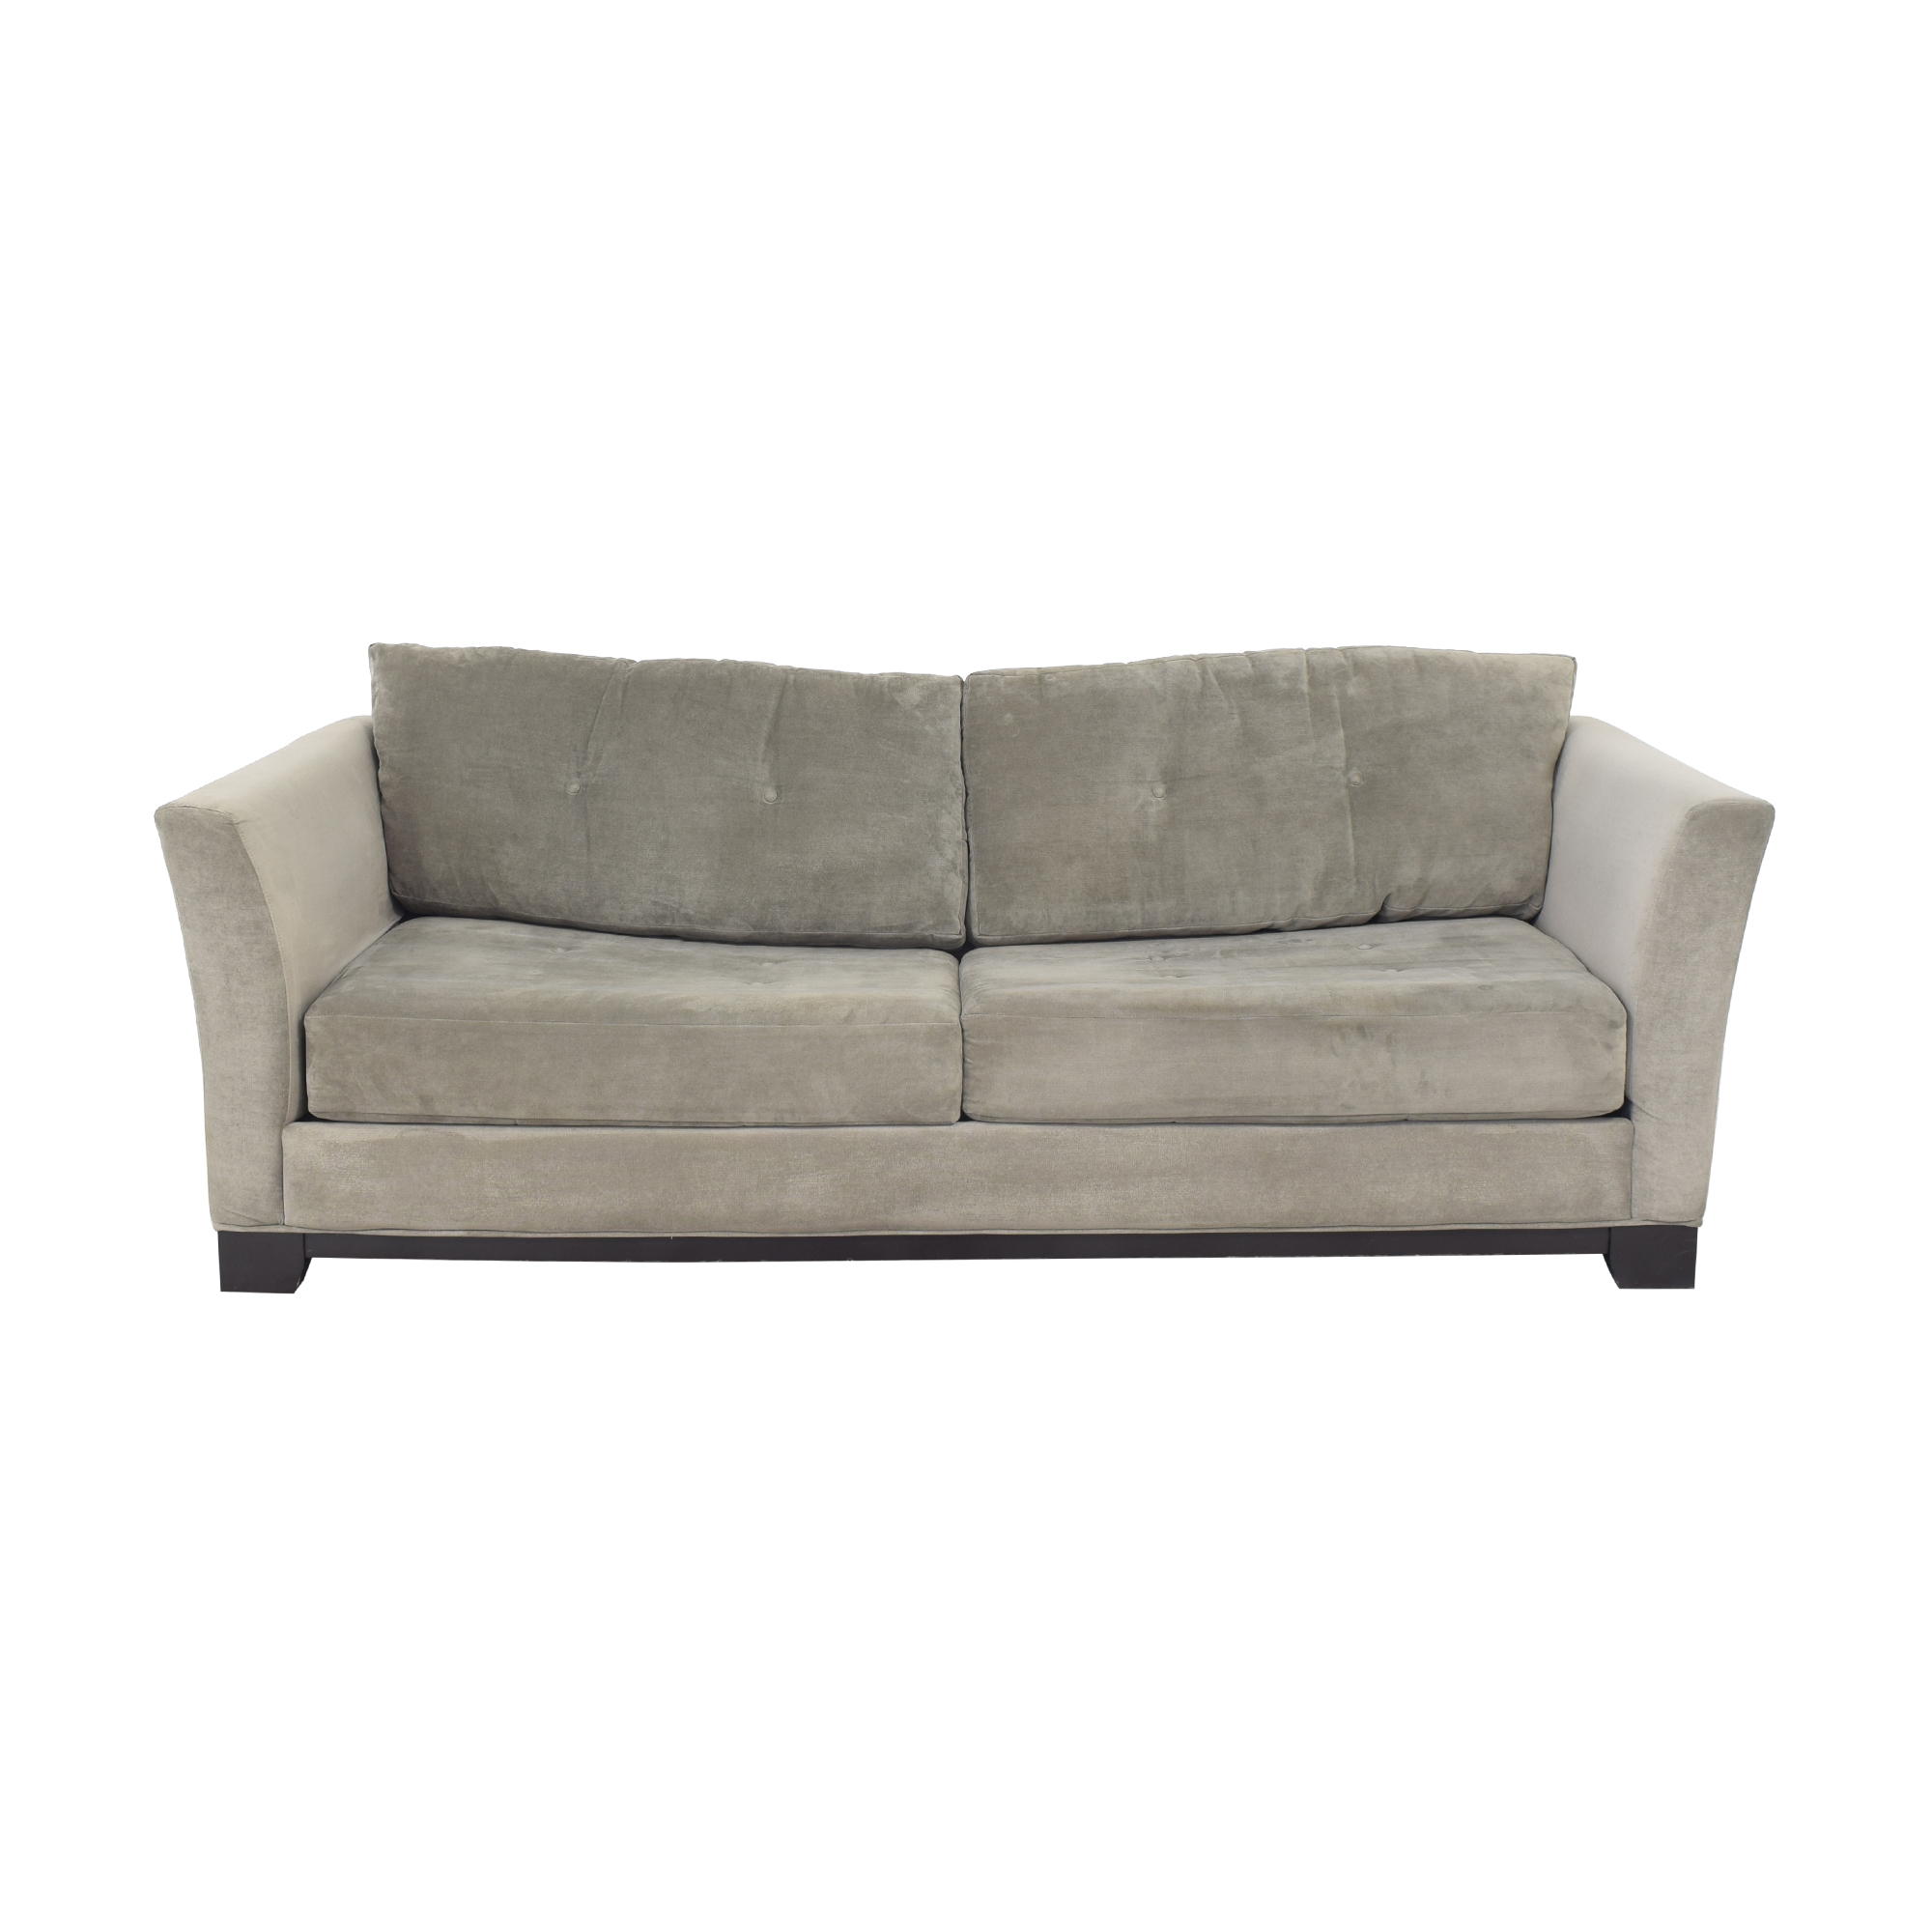 Macy's Elliott Queen Sofa Bed / Sofa Beds